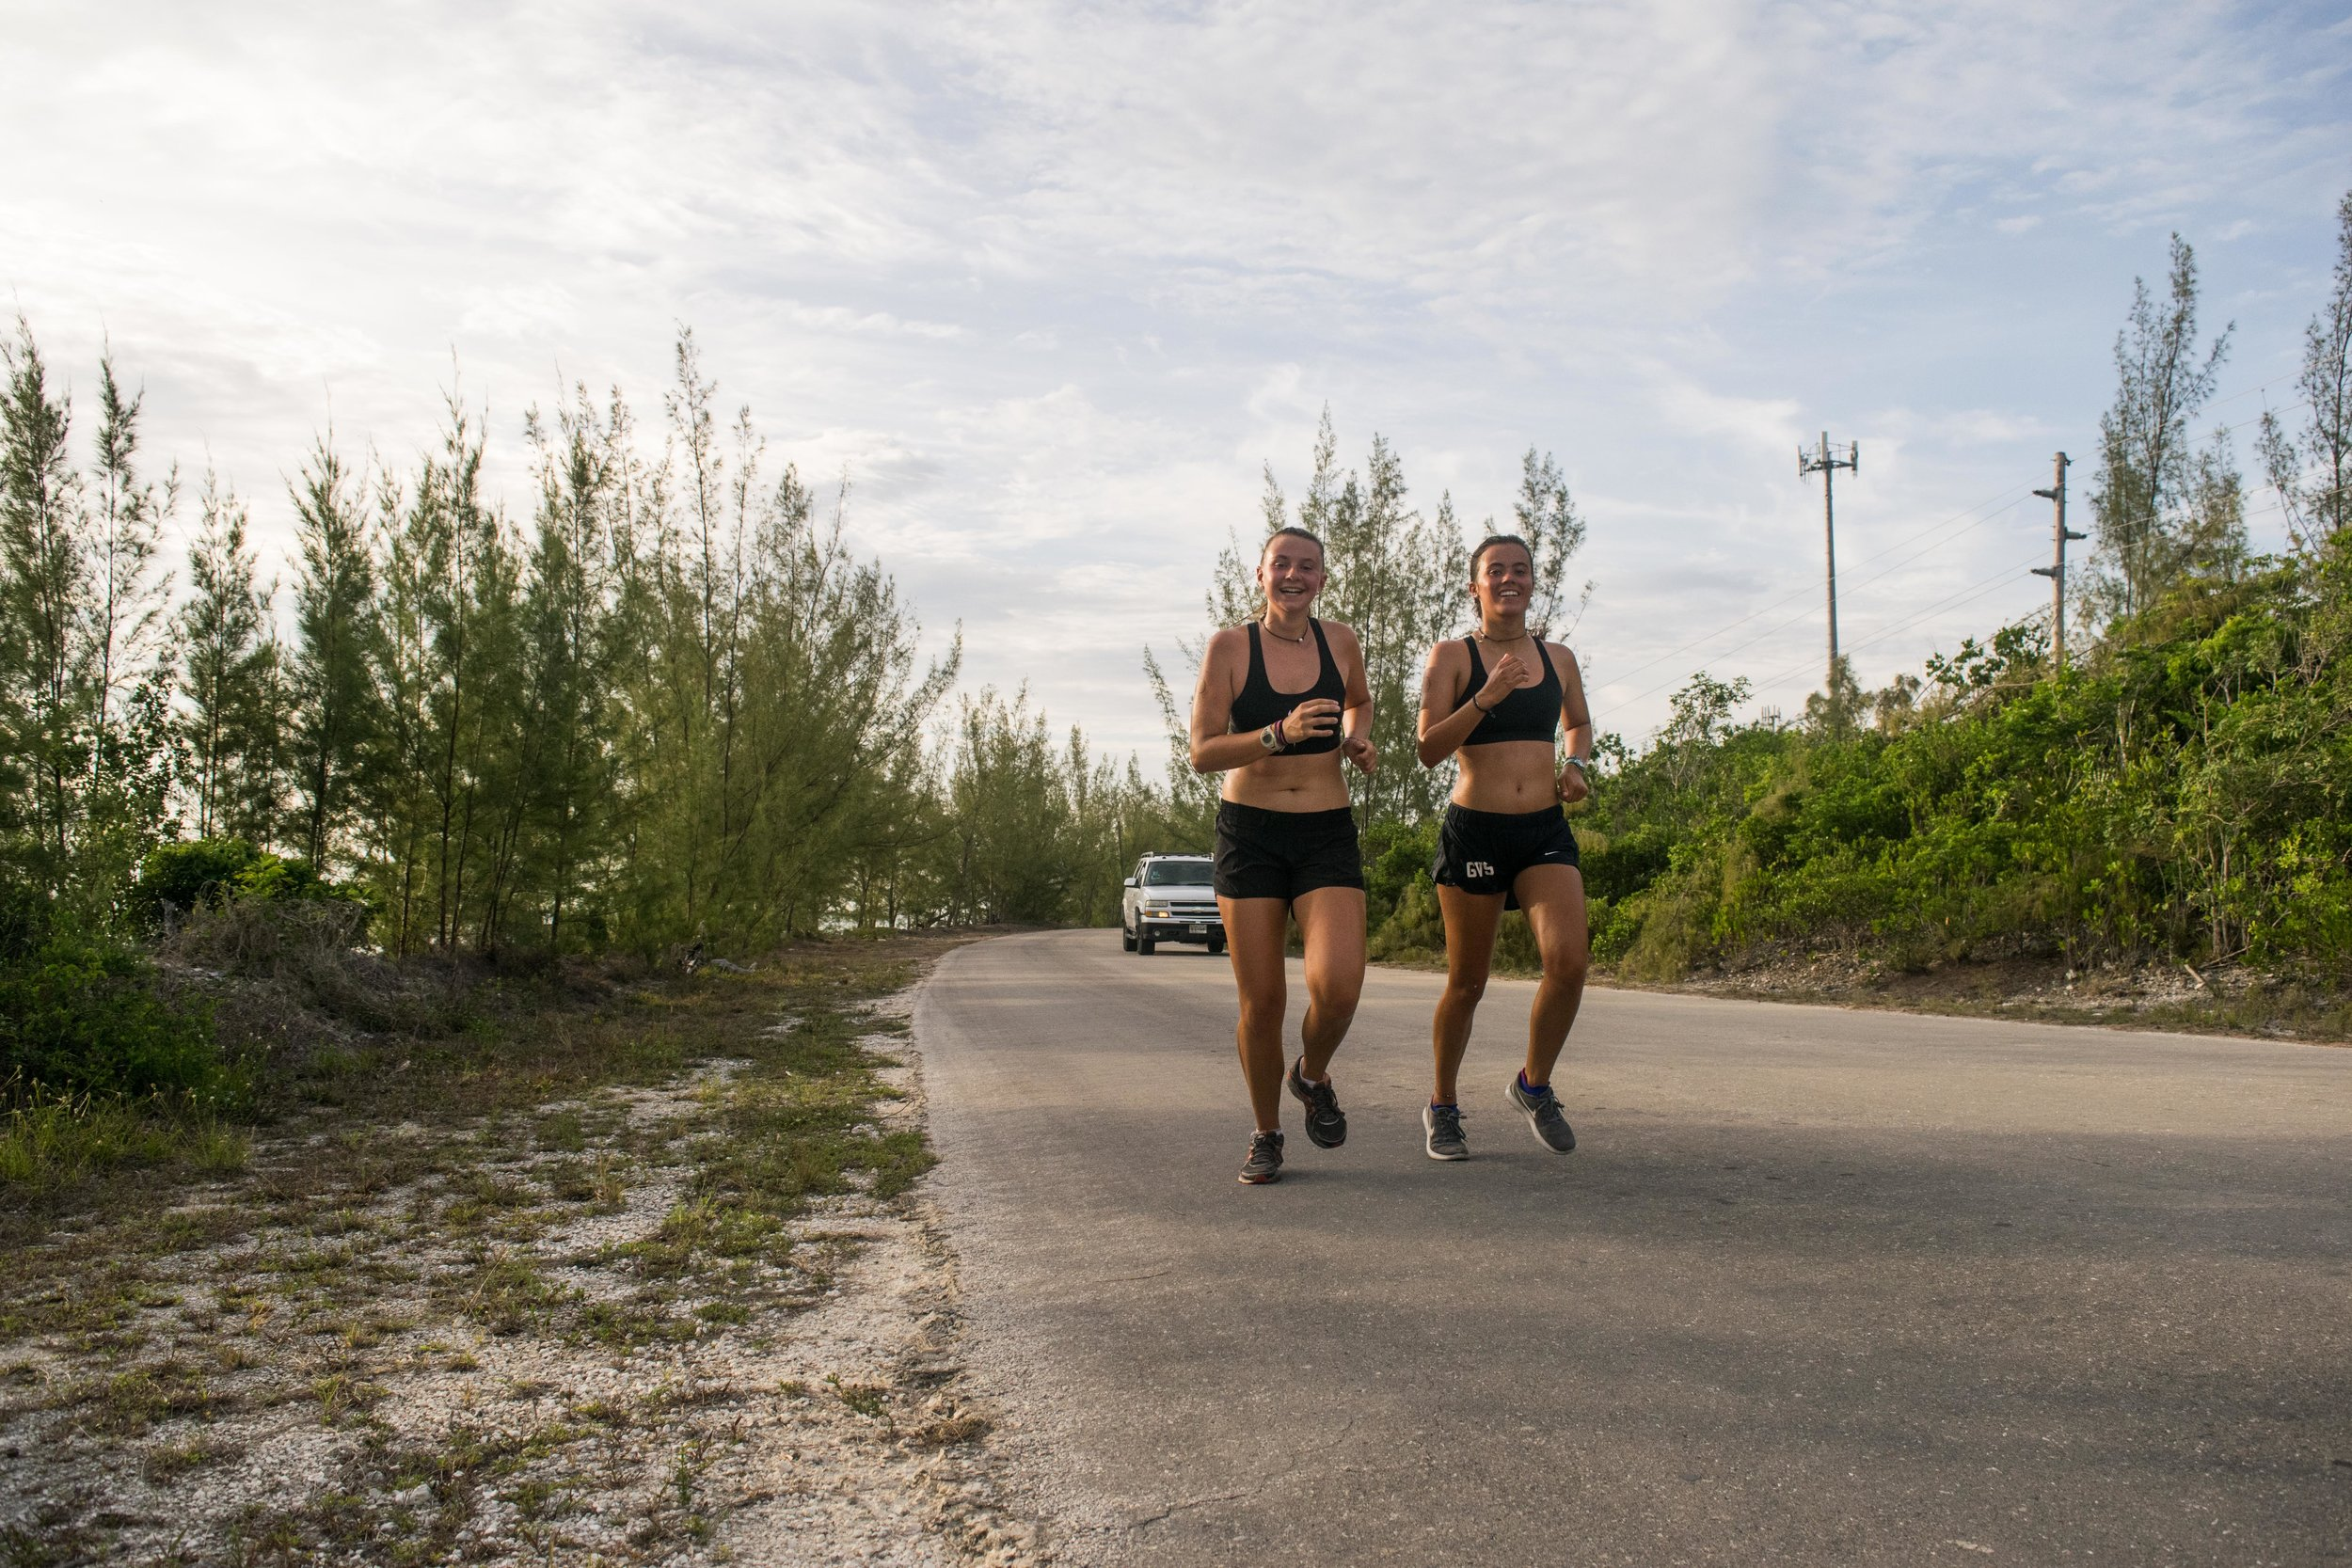 Meg Barnes and Olive Cowan just a few hundred meters from the Half Marathon finish line.